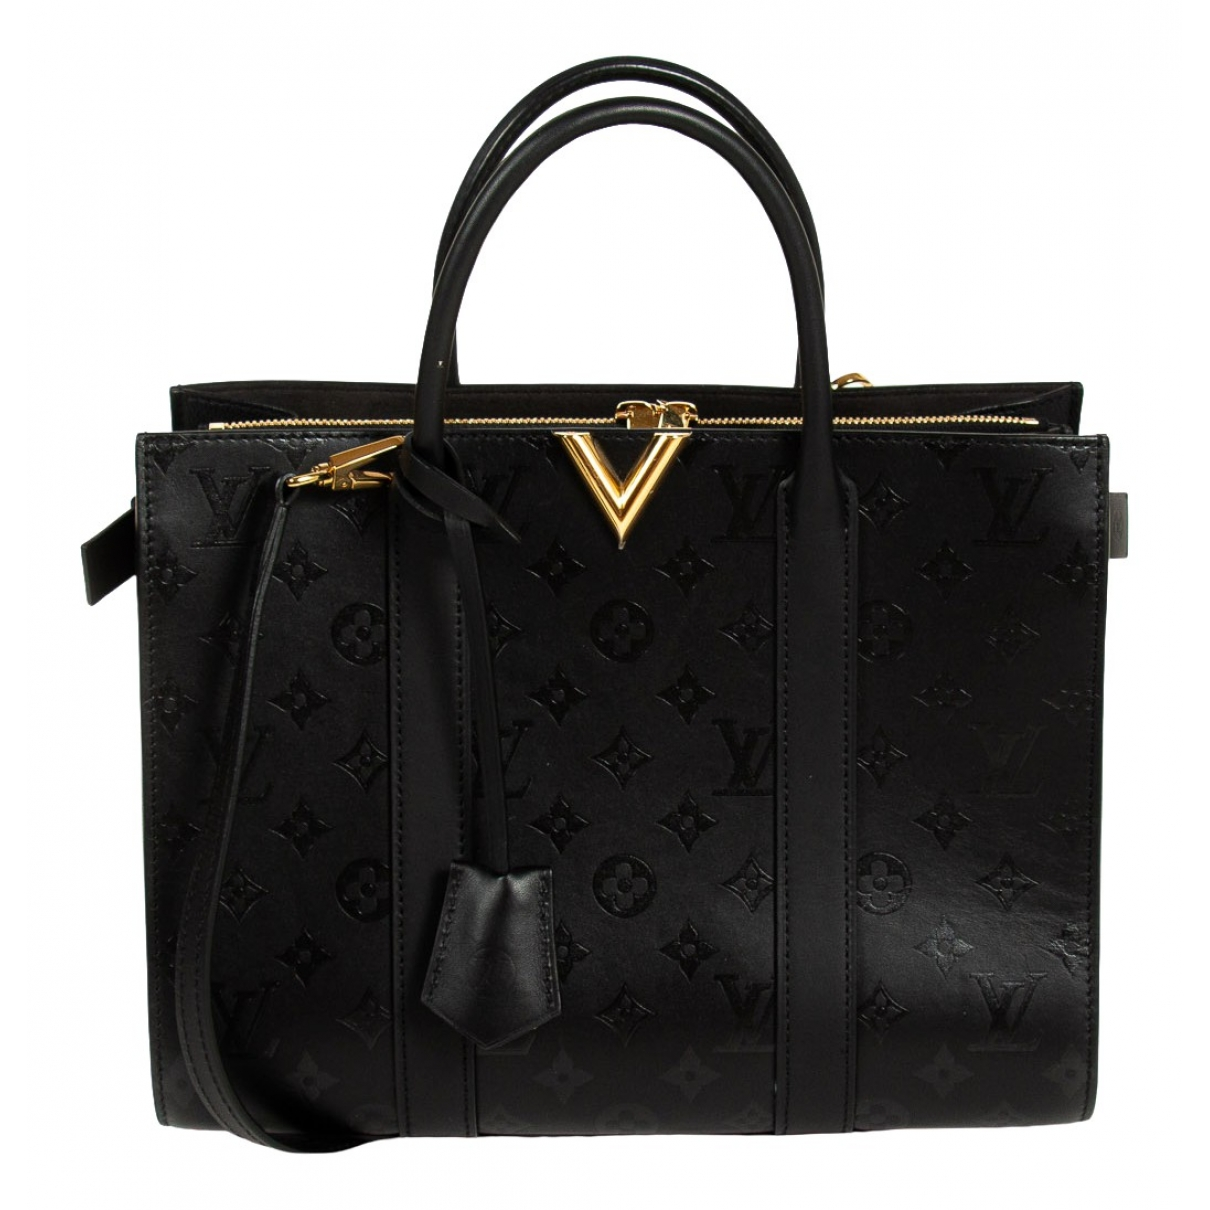 Louis Vuitton Very Black Leather handbag for Women \N